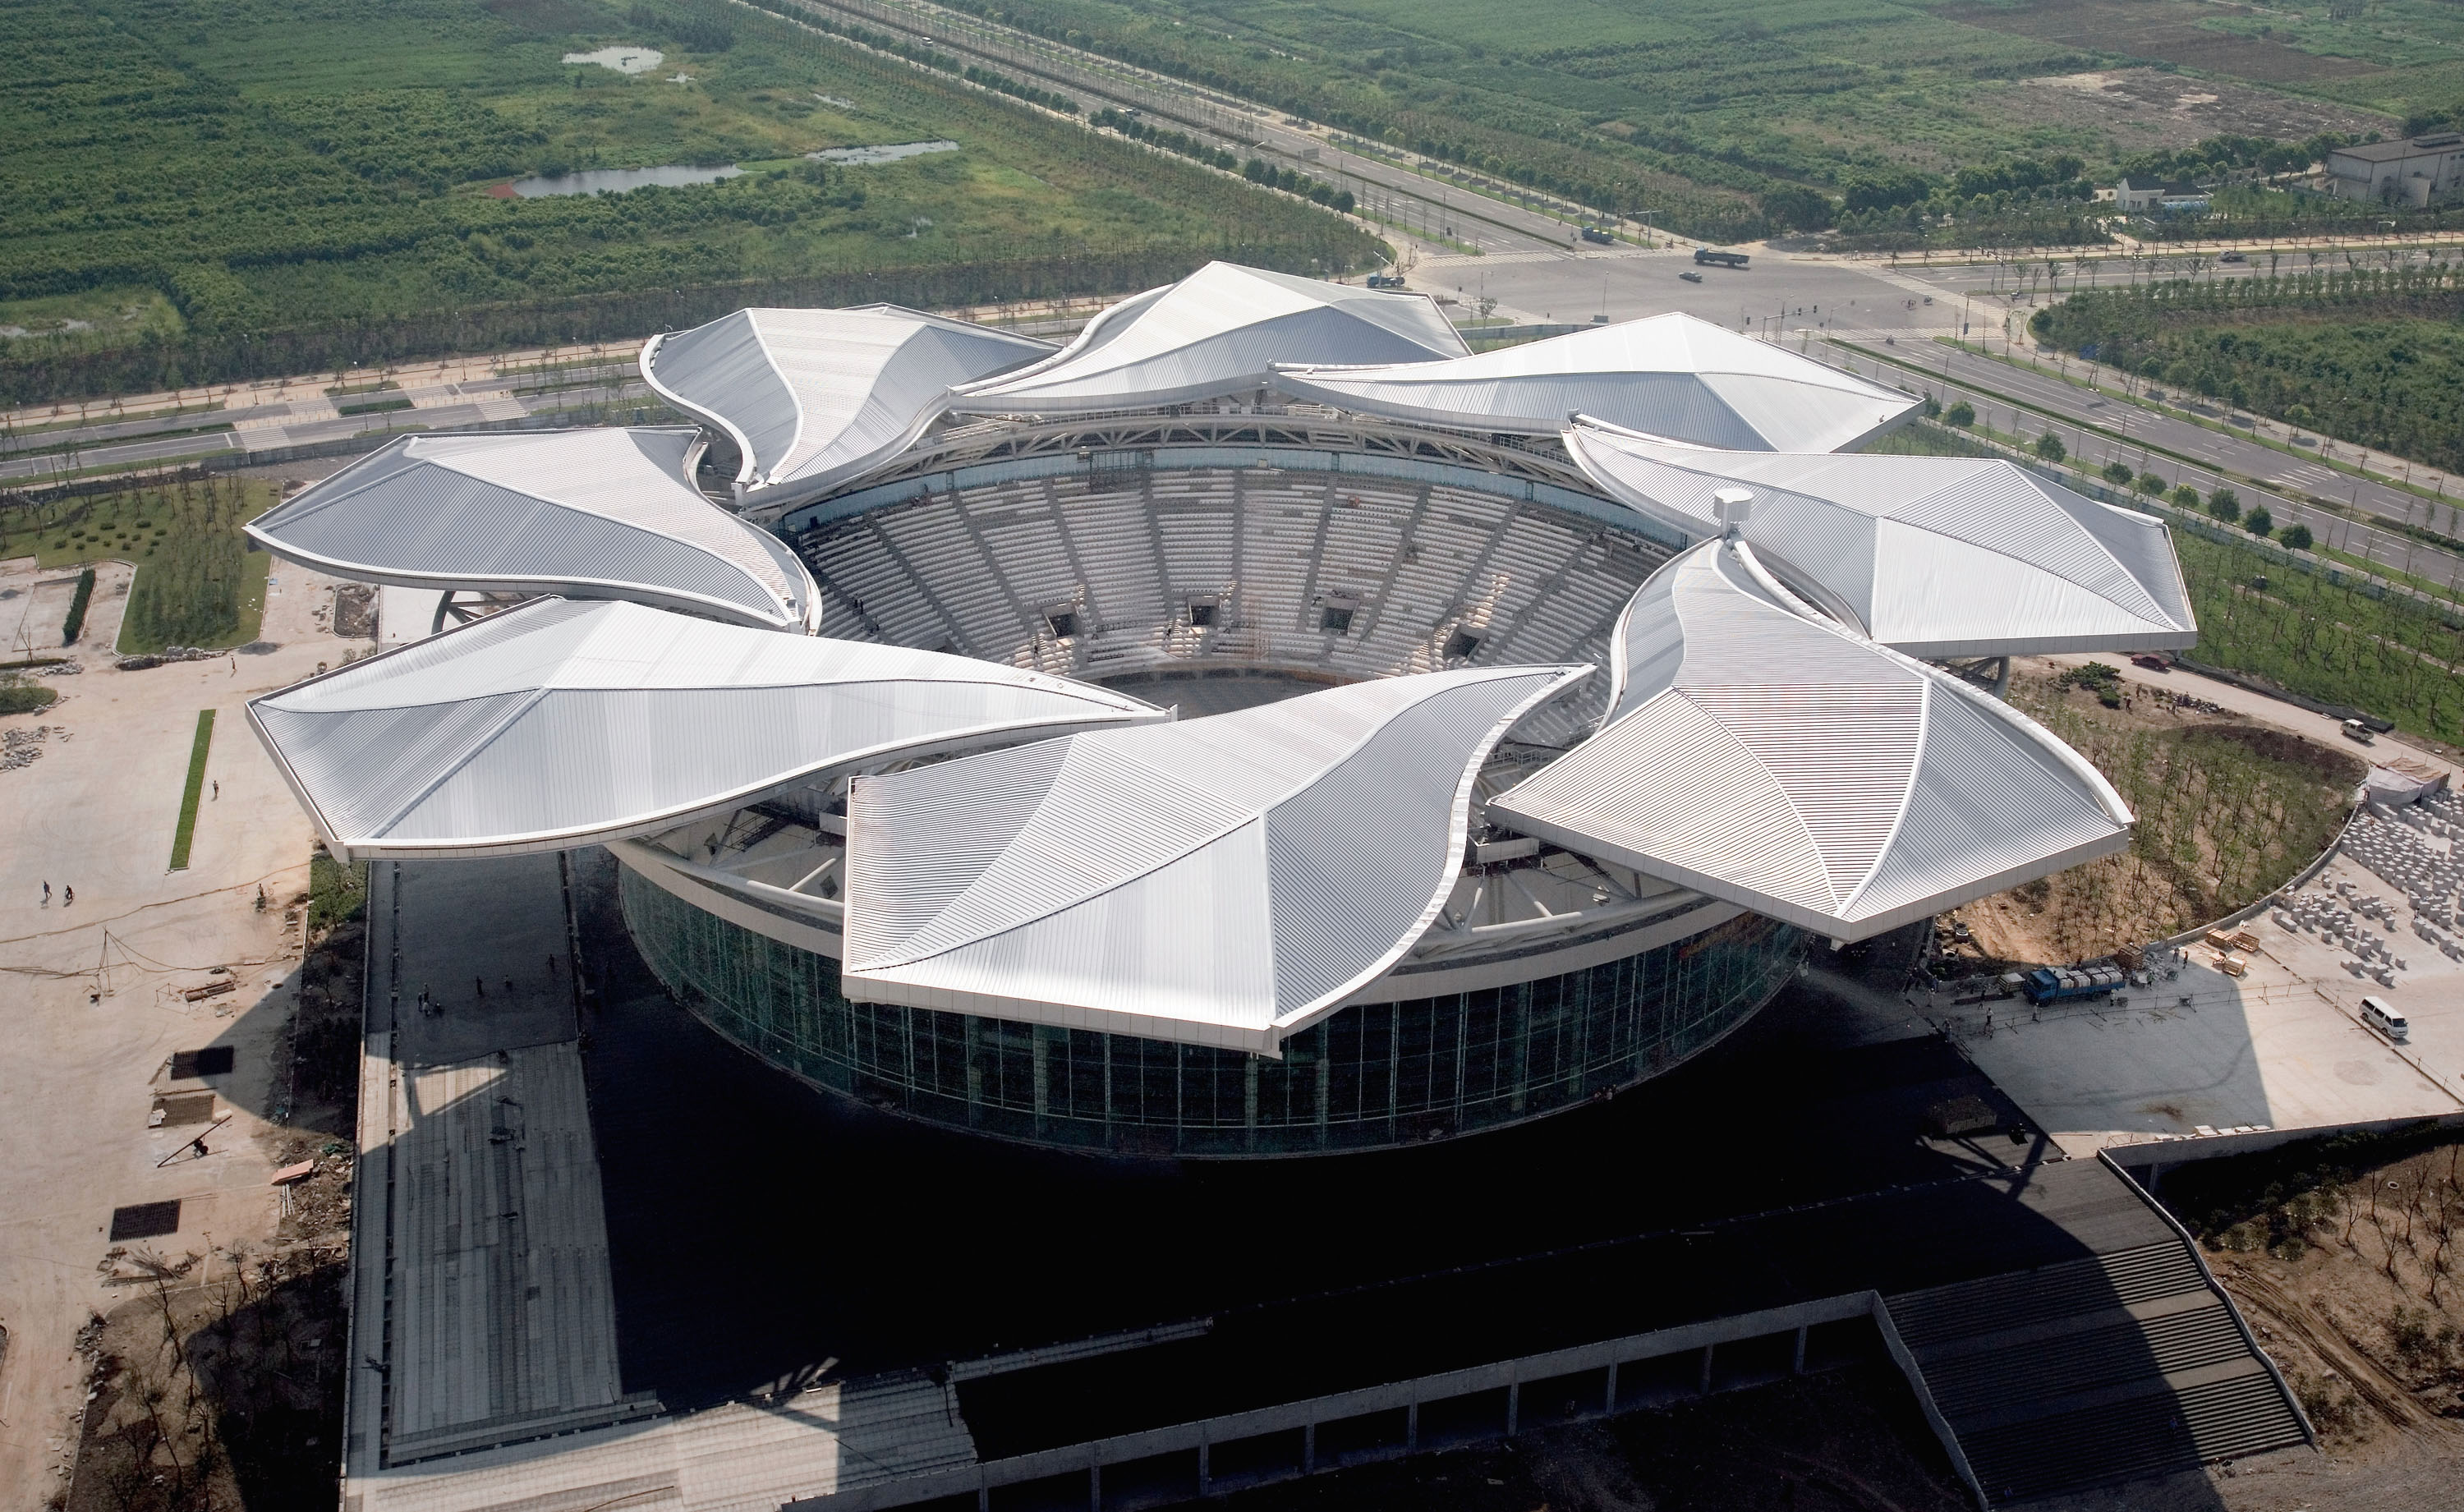 The Qizhong Tennis Center was built with a dual-purpose indoor-outdoor 15,000-seat center court and a special roof shaped like a magnolia flower, which can open and close like a lens shutter.